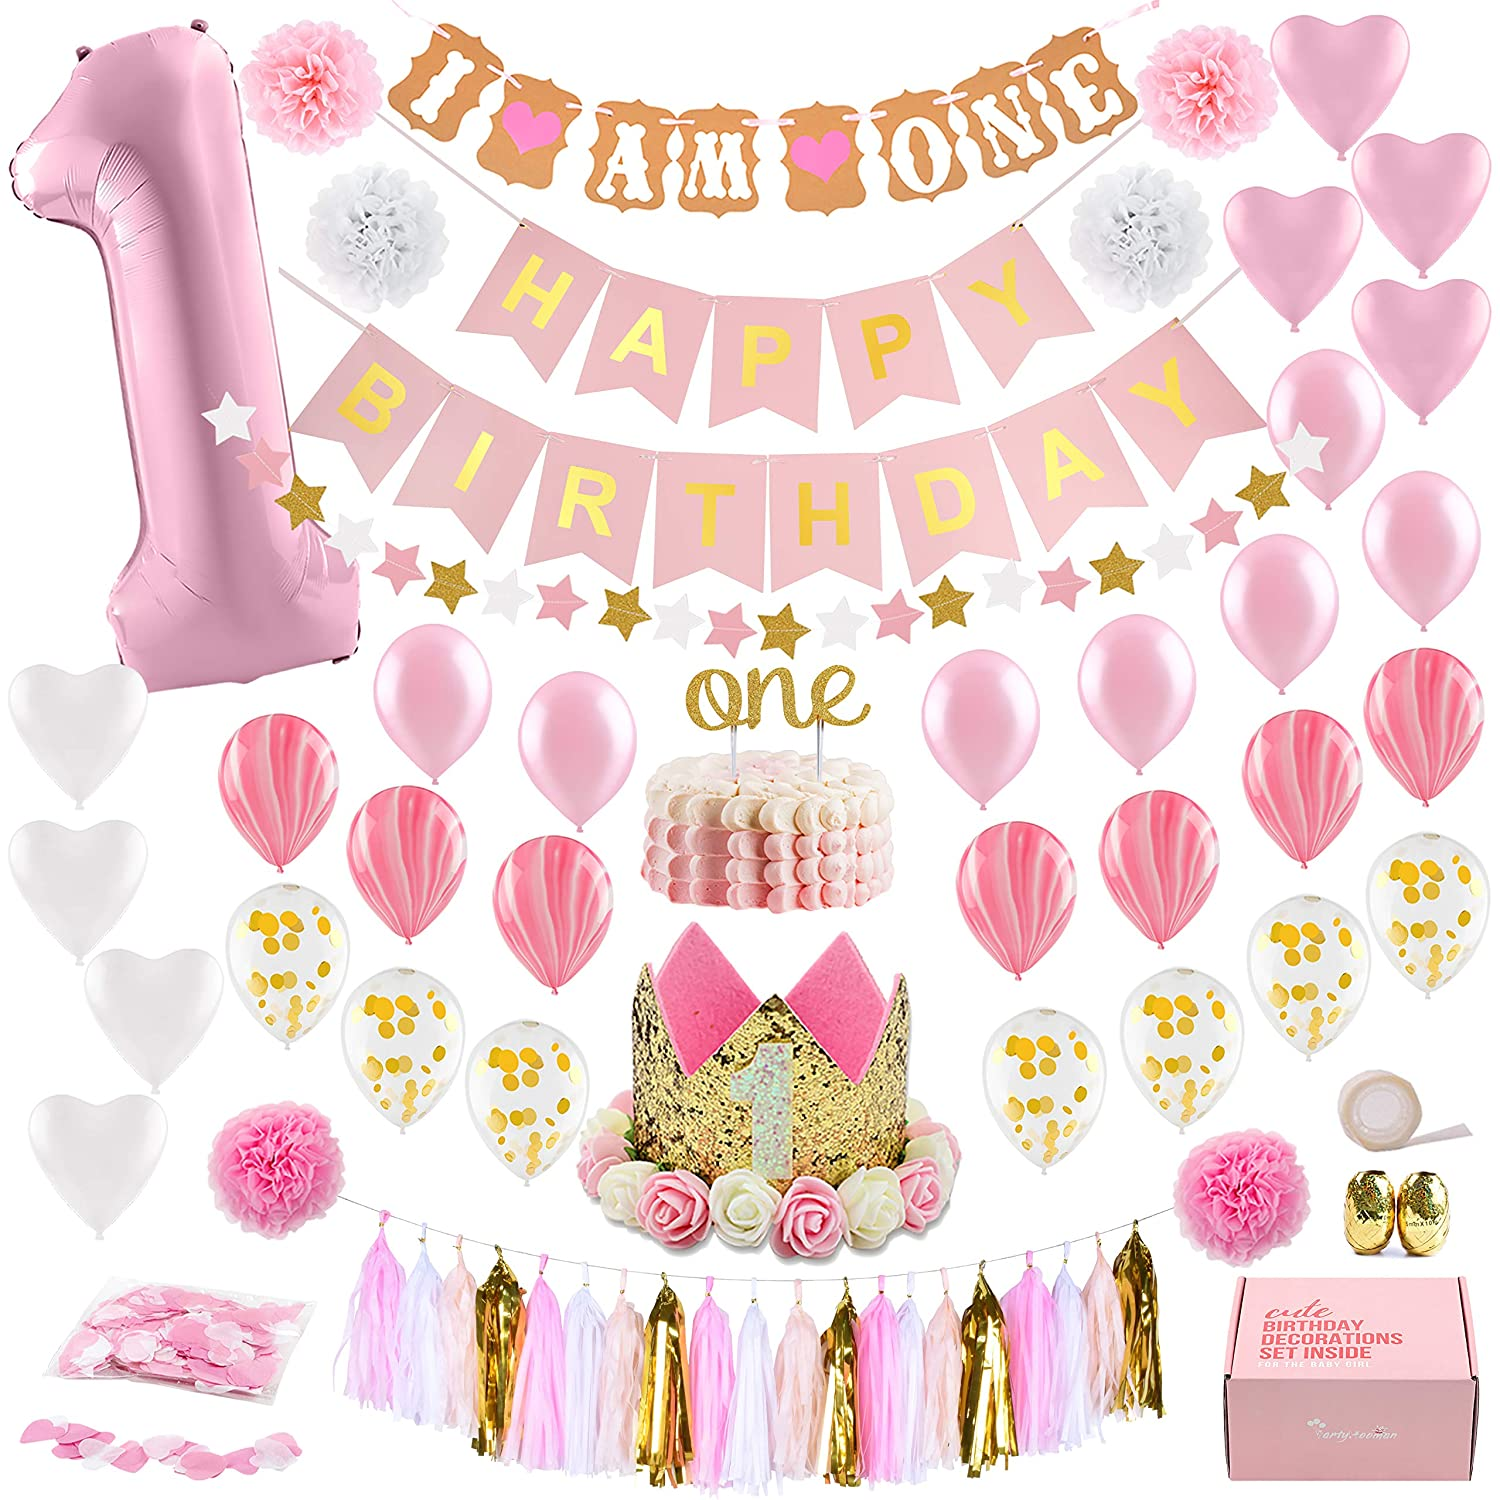 Baby Girl First Birthday Decorations with Birthday Crown - 1st Birthday Girl Decorations - Pink and Gold Party Supplies - Number One, Heart and Confetti Balloons, Happy Birthday Banner...